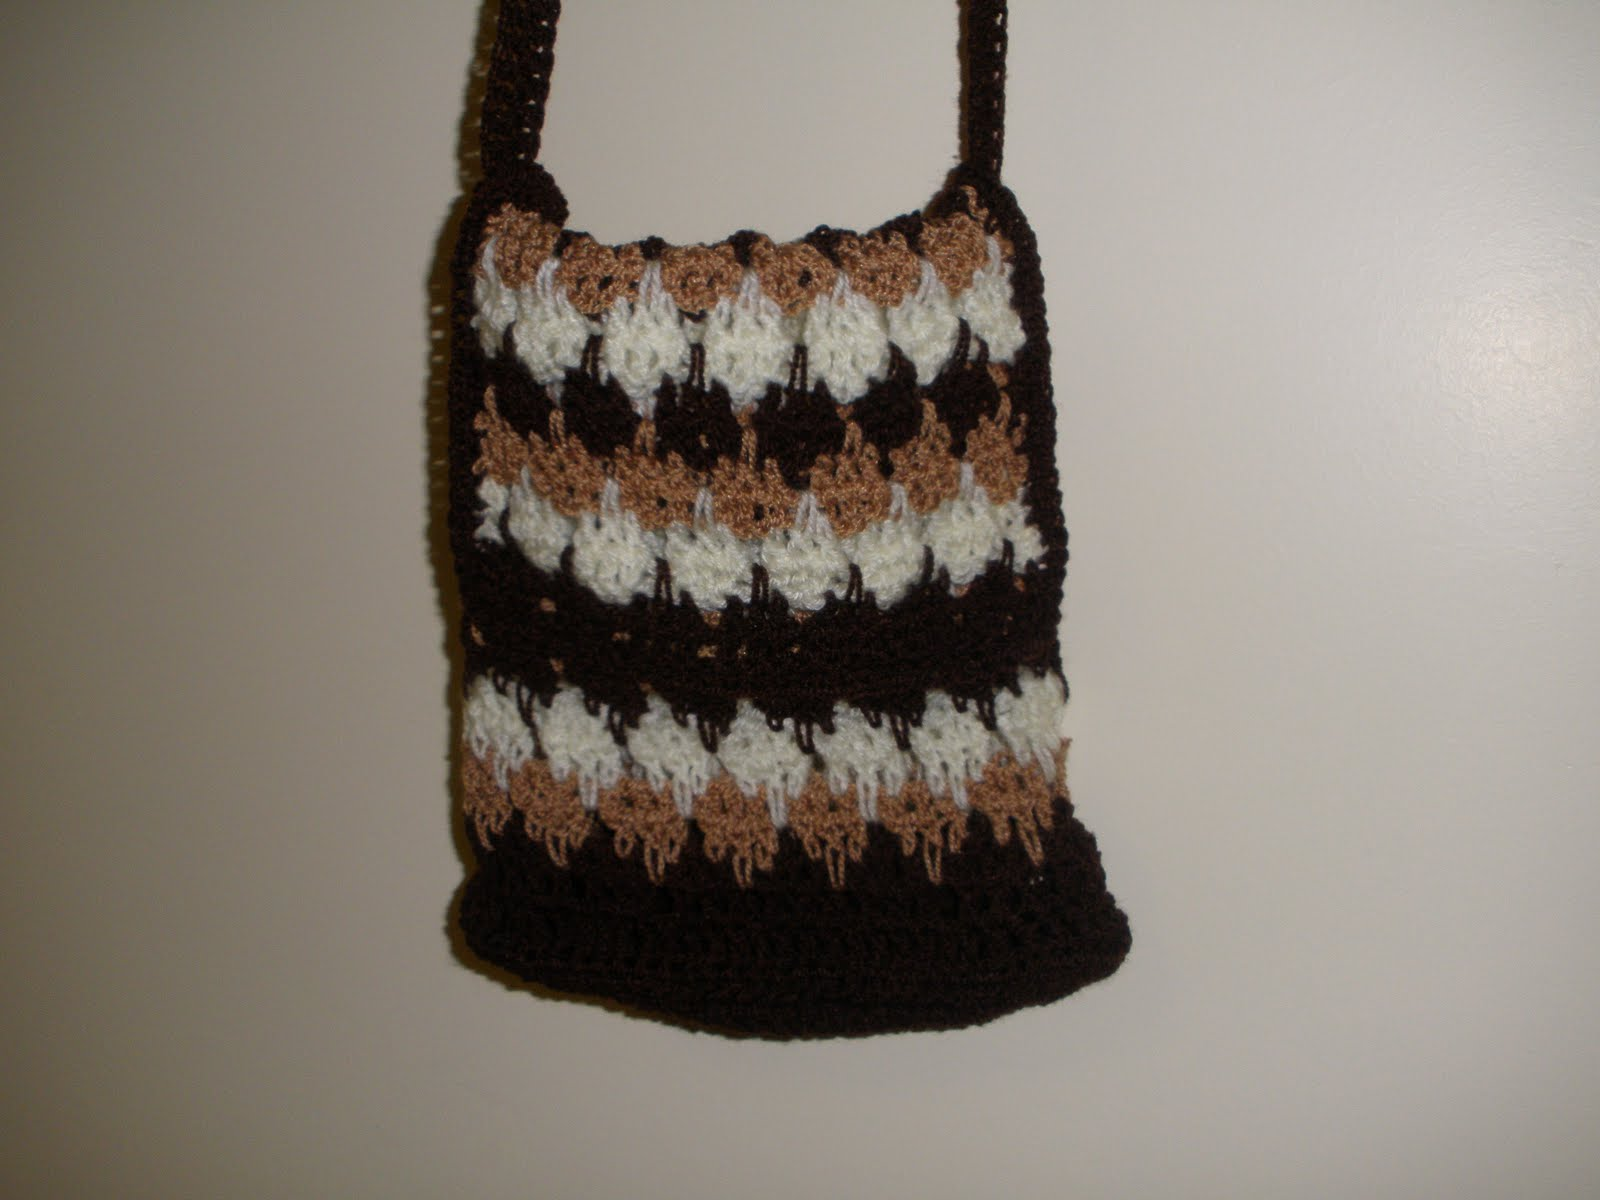 Crochet Sling Bag Pattern : Rose Garden Crochet: Crochet Sling Bag